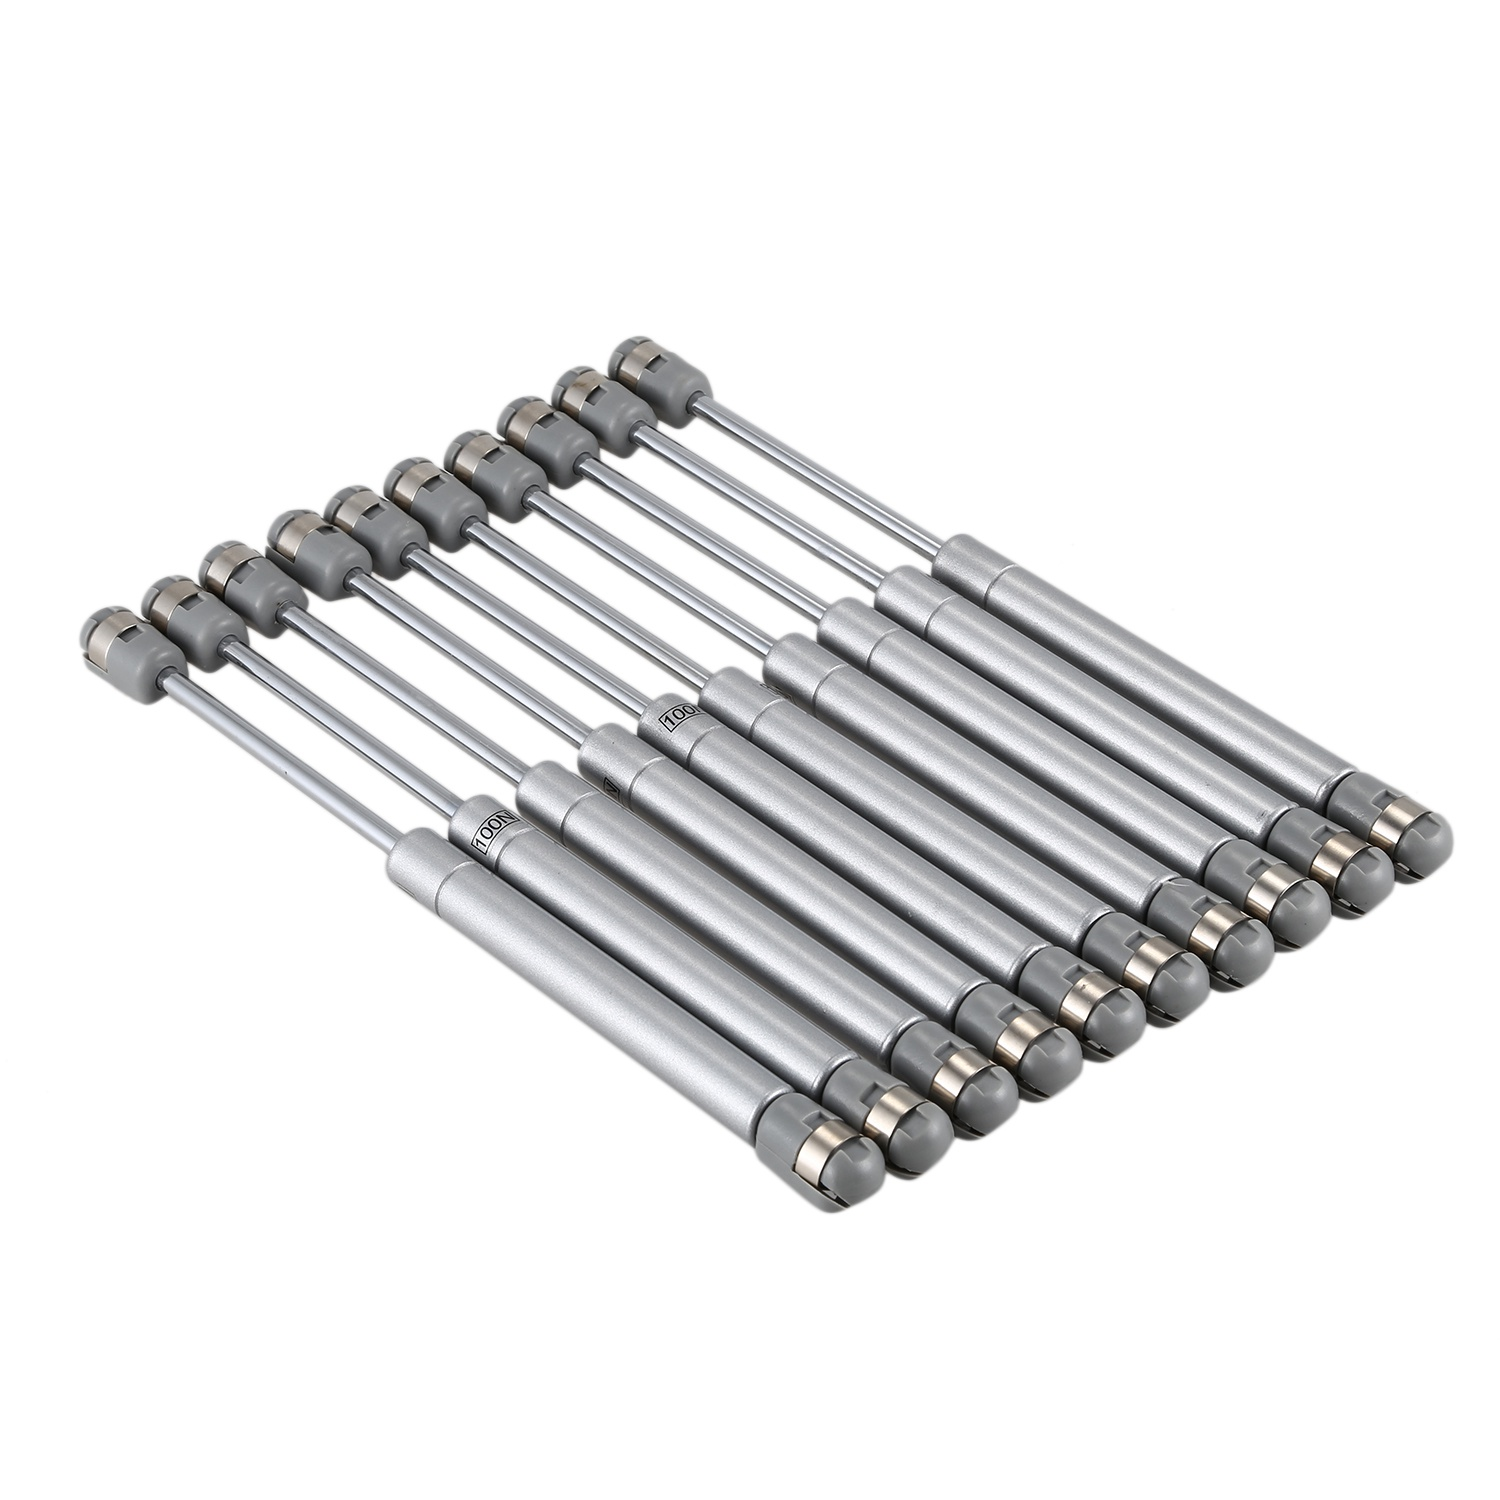 Expressive Hot Sale 10pcs 100n/kg Door Lift Pneumatic Support Hydraulic Gas Spring Stay For Furniture Hinge Kitchen Cabinet Stay Hold Discounts Price